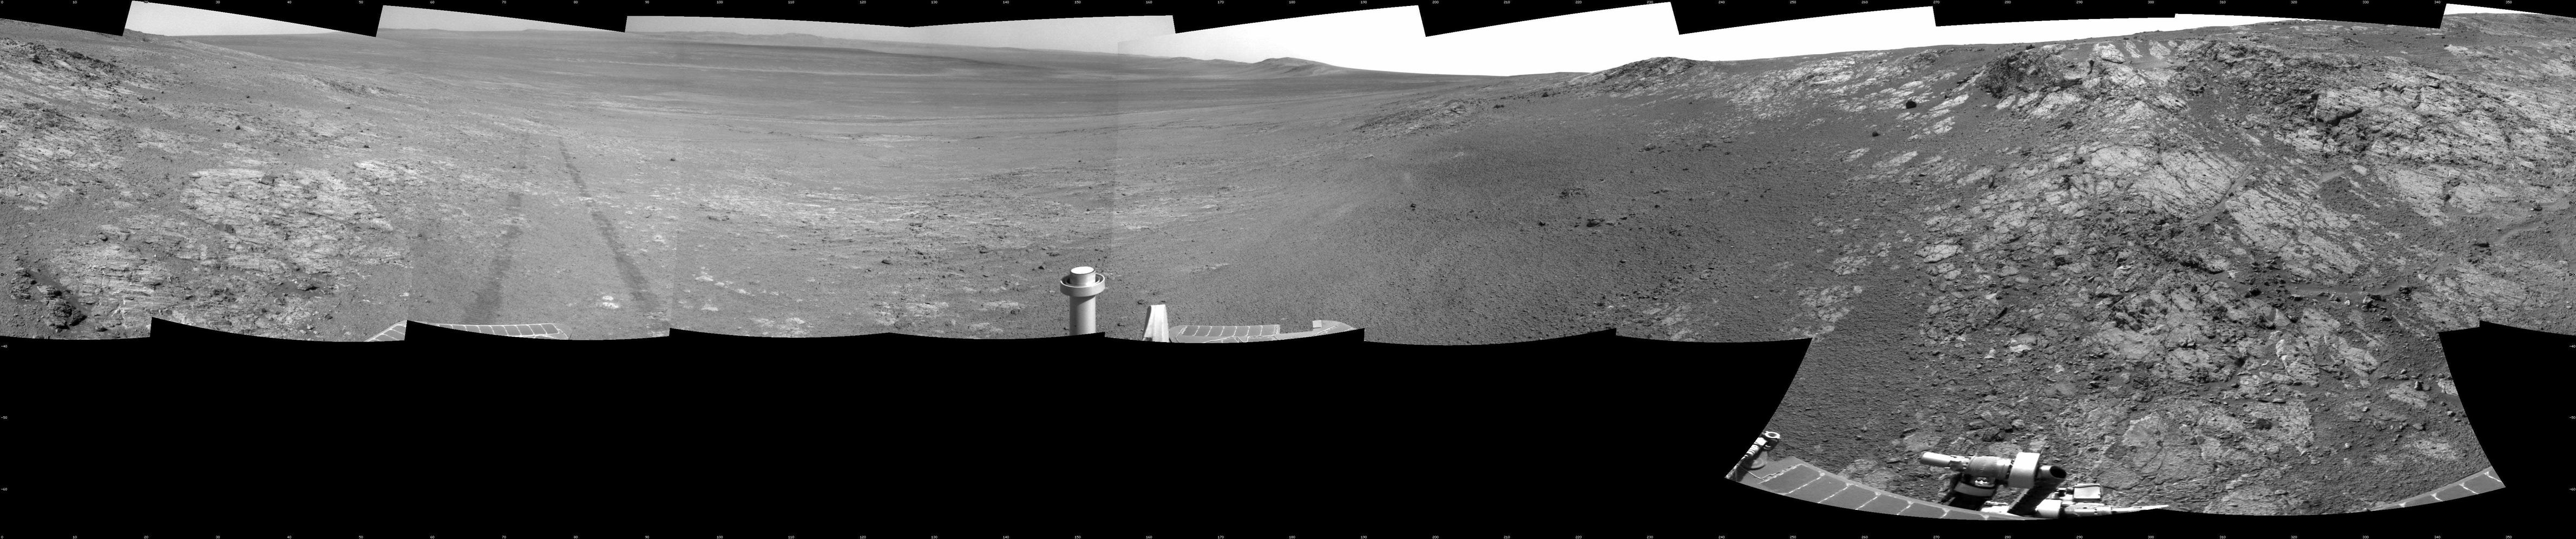 This full-circle panorama shows the terrain around the NASA Mars Exploration Rover Opportunity during the 3,105th Martian day, or sol, of the rover's work on Mars (Oct. 18, 2012).